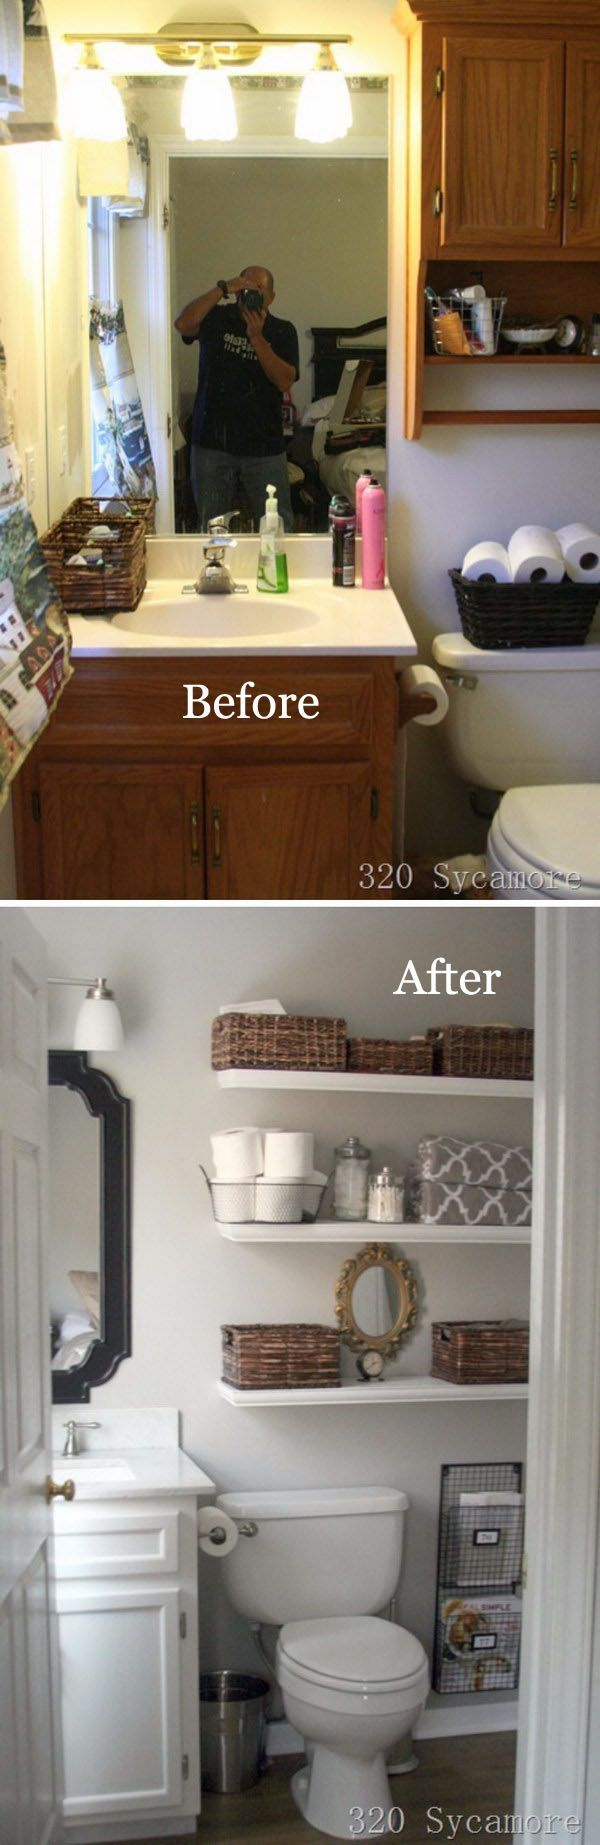 Bathroom designs for small master bathrooms - Before And After 20 Awesome Bathroom Makeovers Downstairs Bathroomwhite Bathroommaster Bathroomssmall